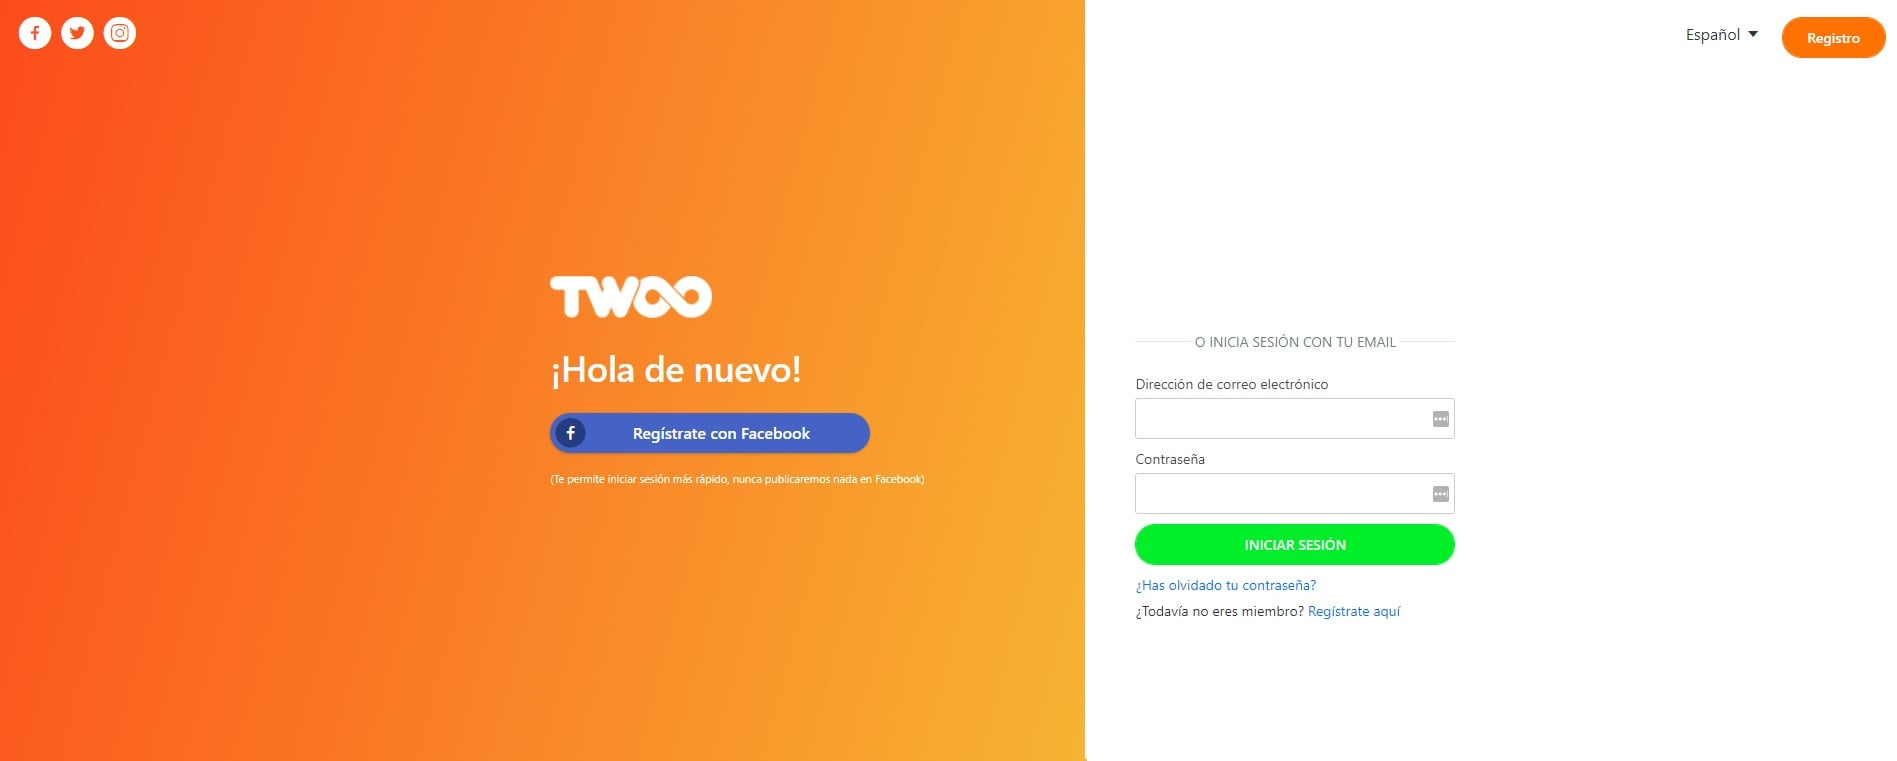 twoo-opiniones